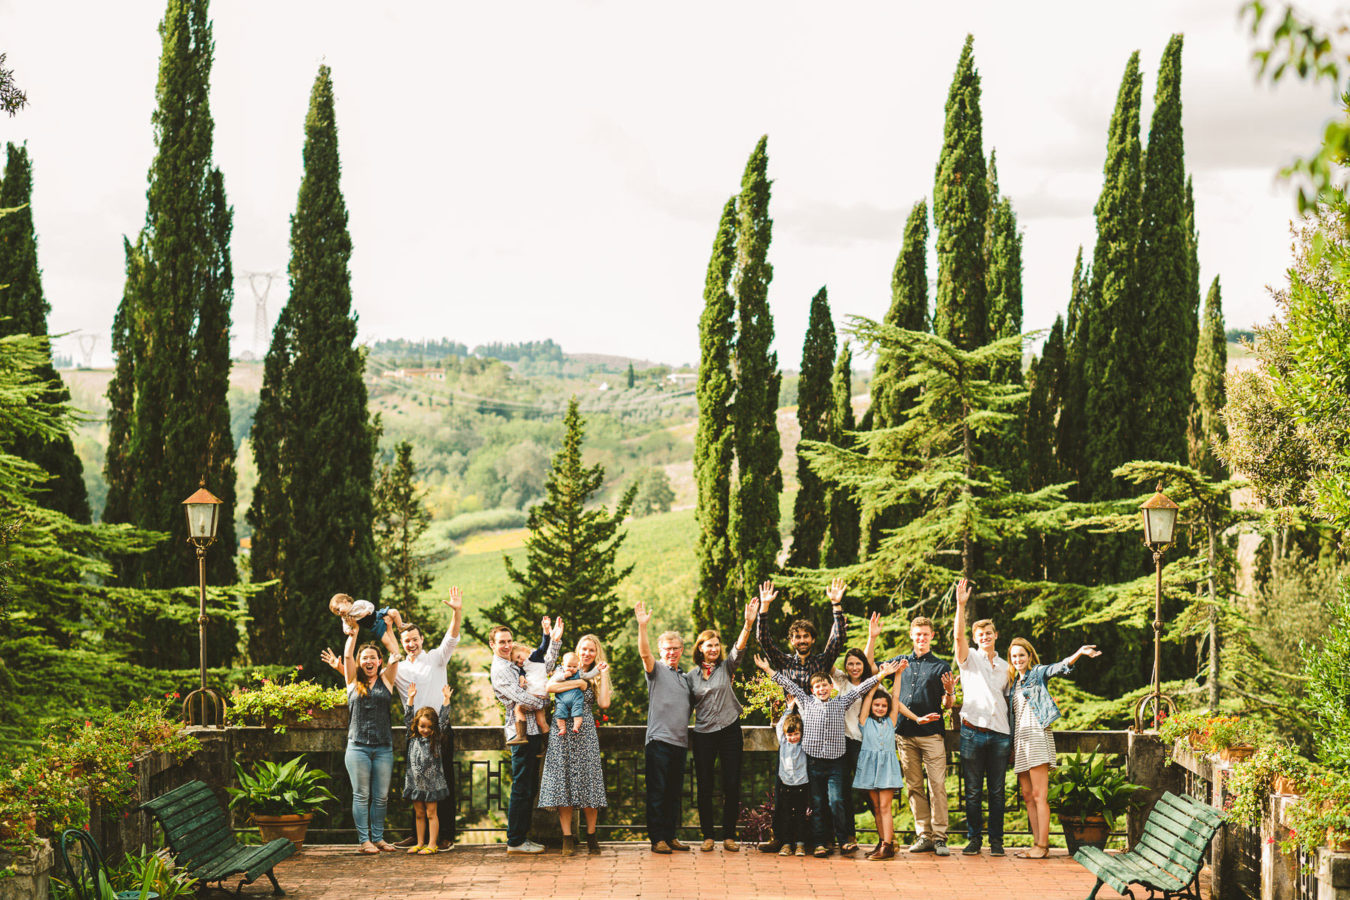 Family reunion photo shoot in Tuscany countryside of Chianti